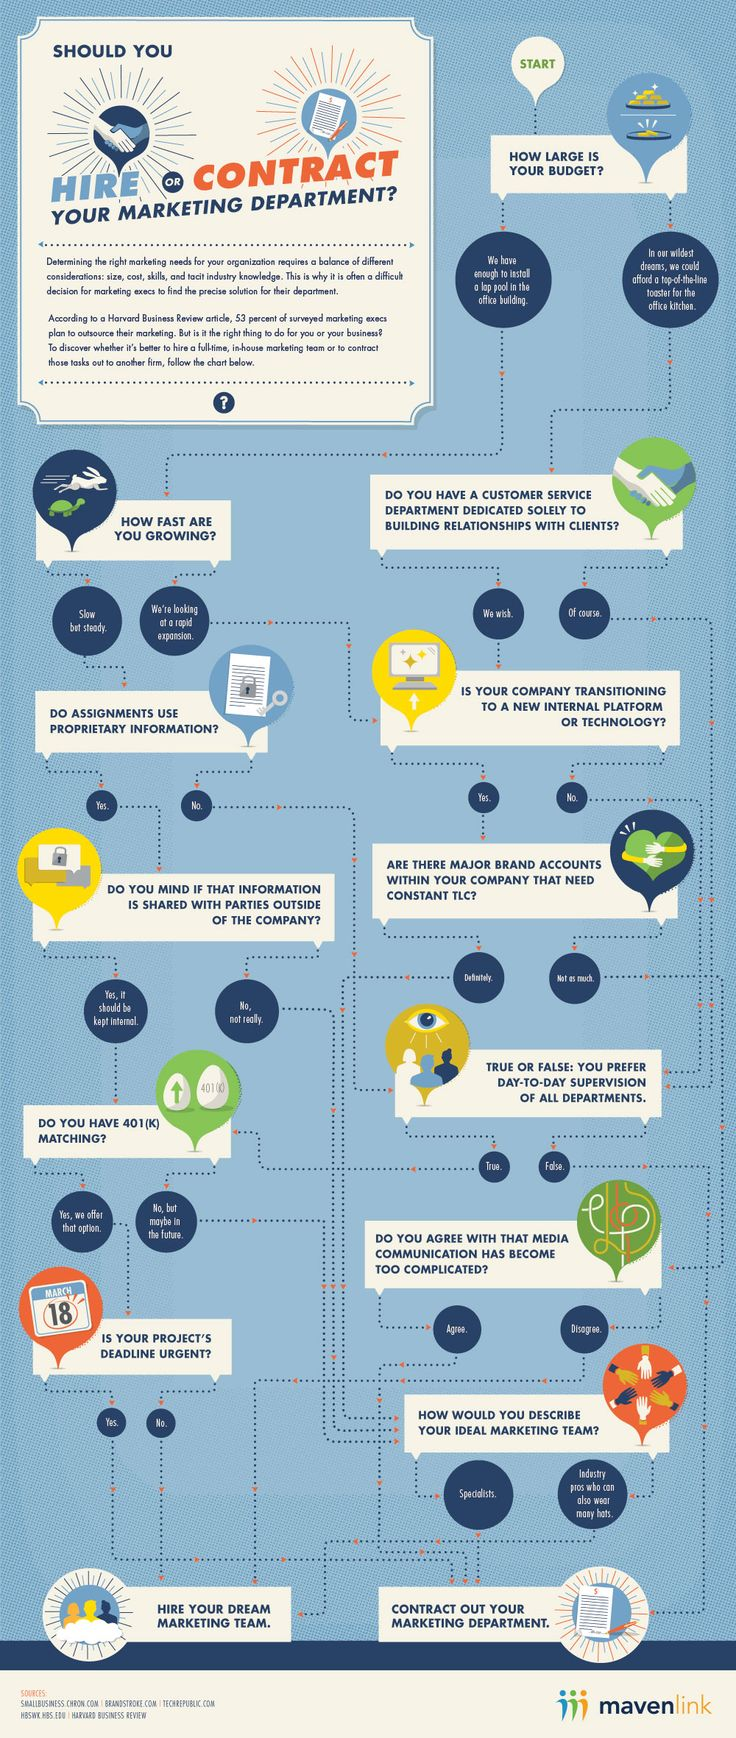 General Management - Should You Hire, or Contract, Your Marketing Team? [Infographic] : MarketingProfs Article